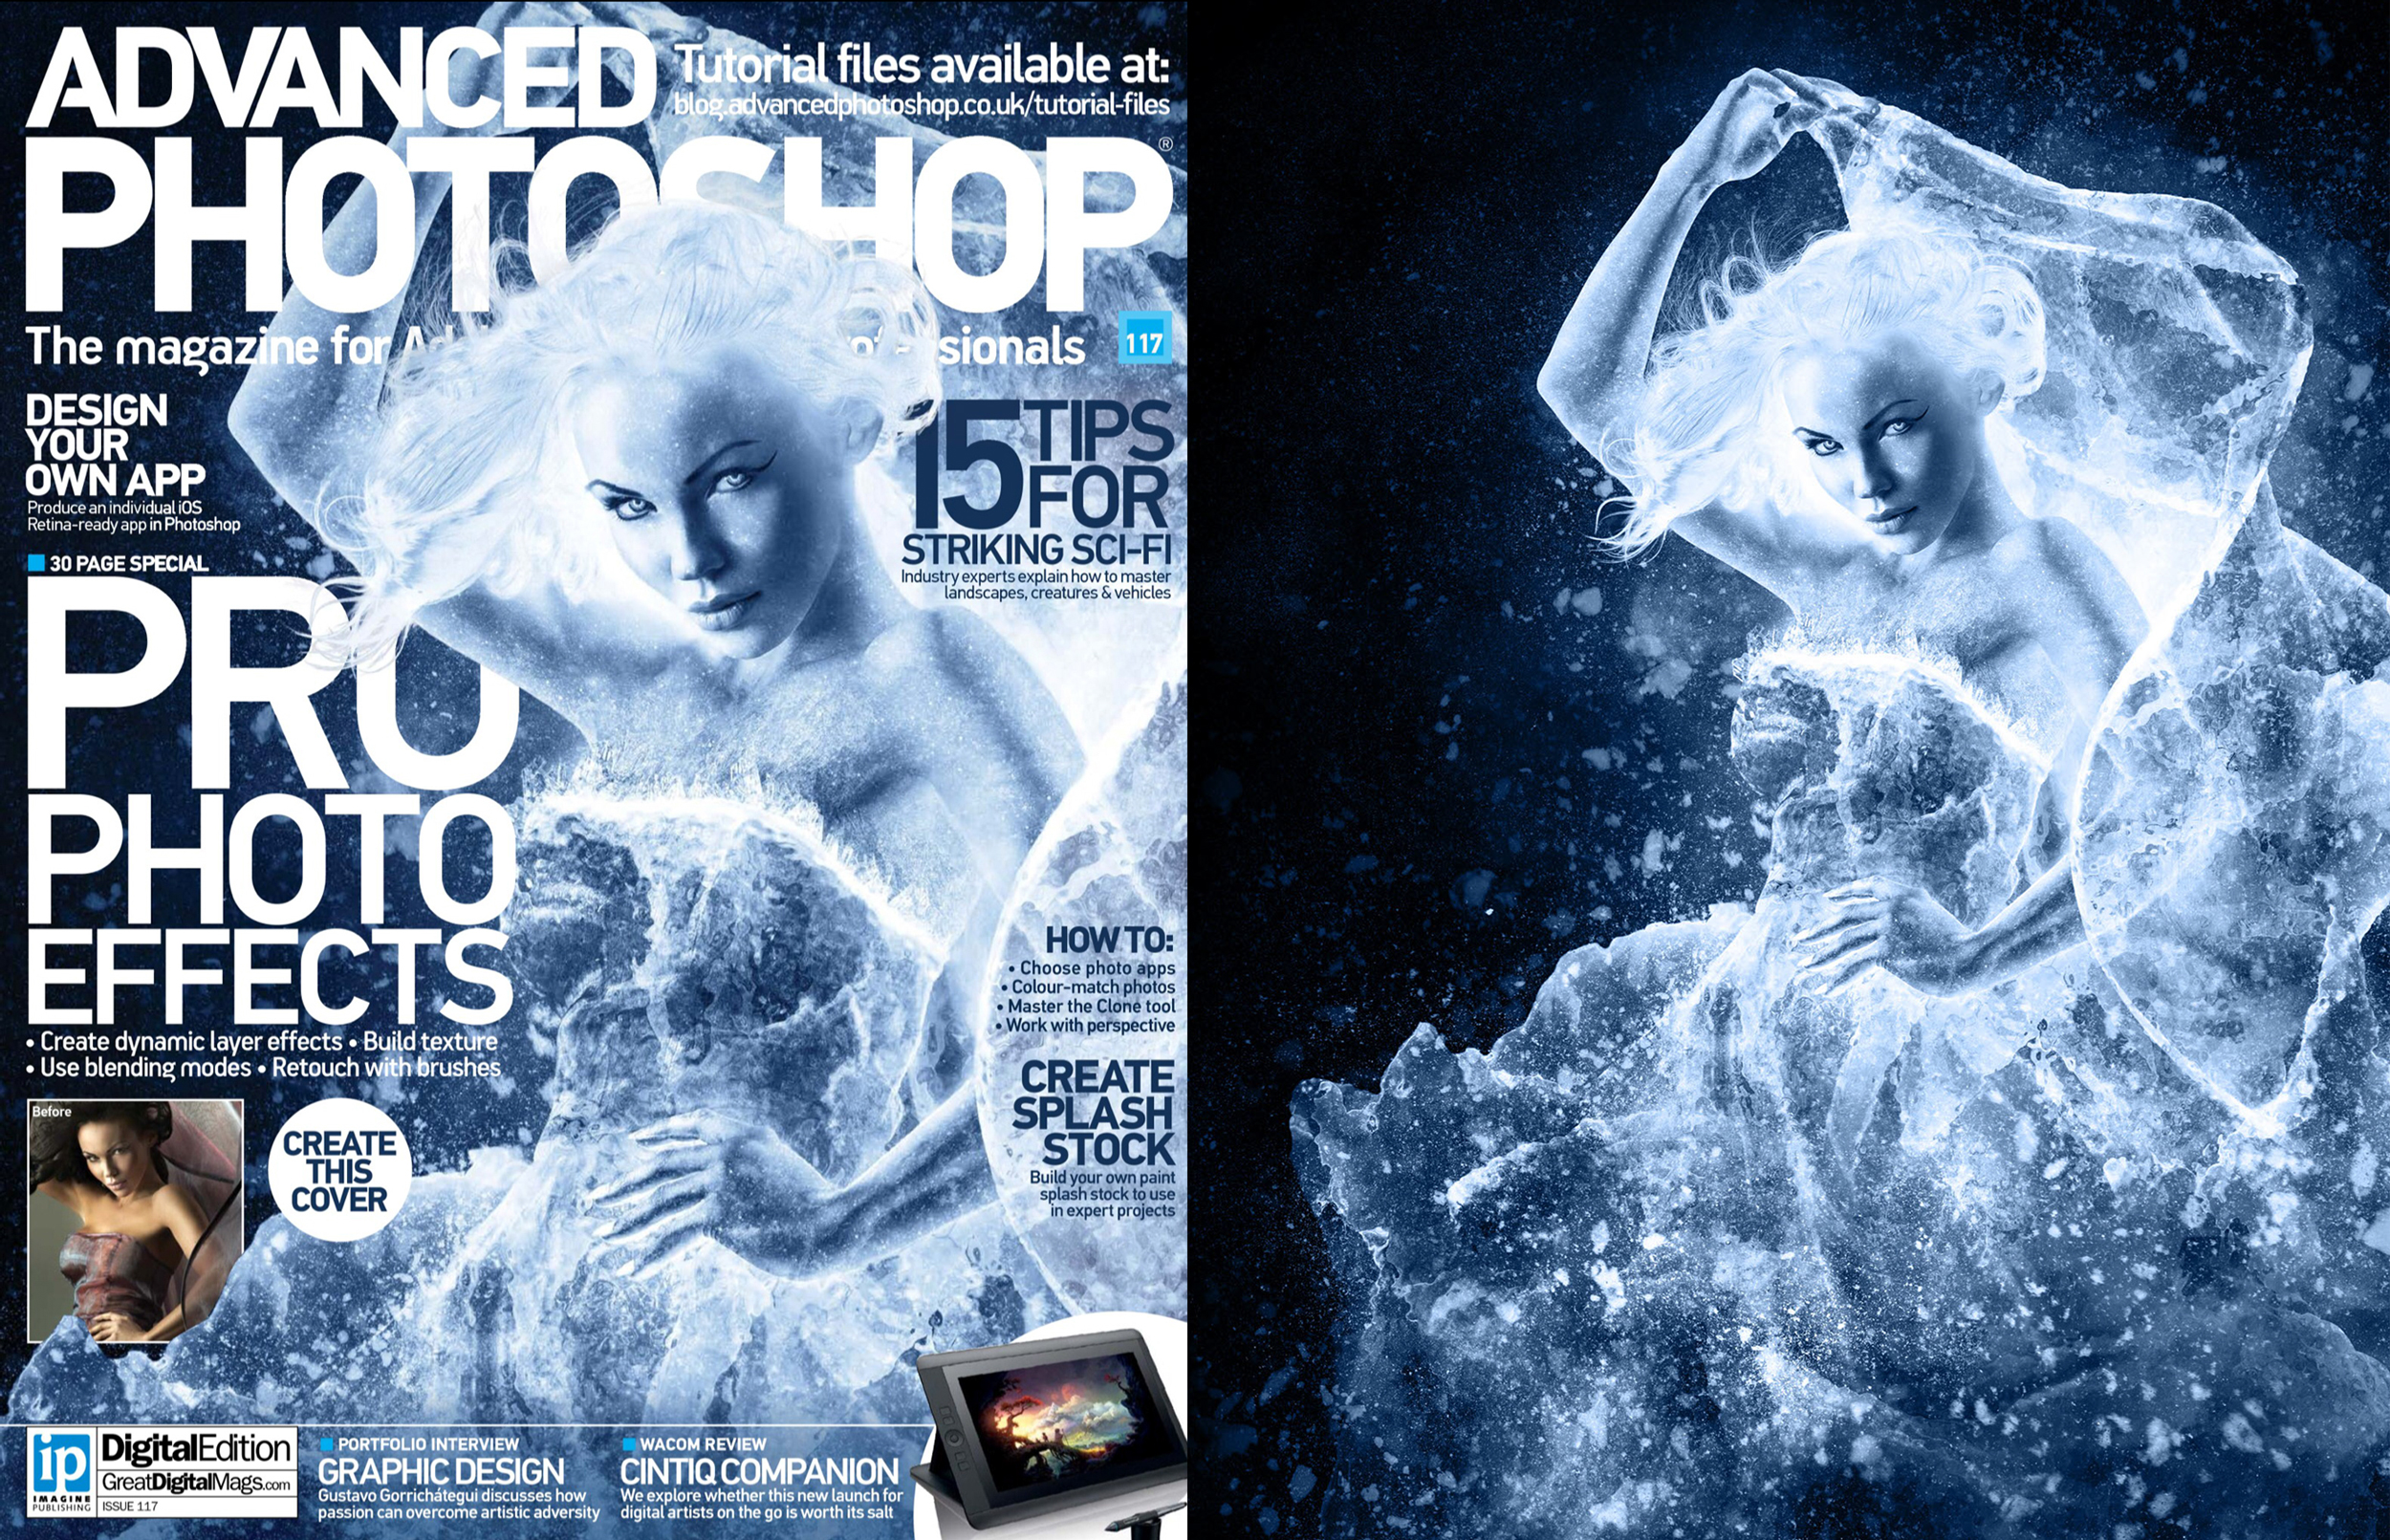 ad_ps_ice_queen_cover_comp.jpeg